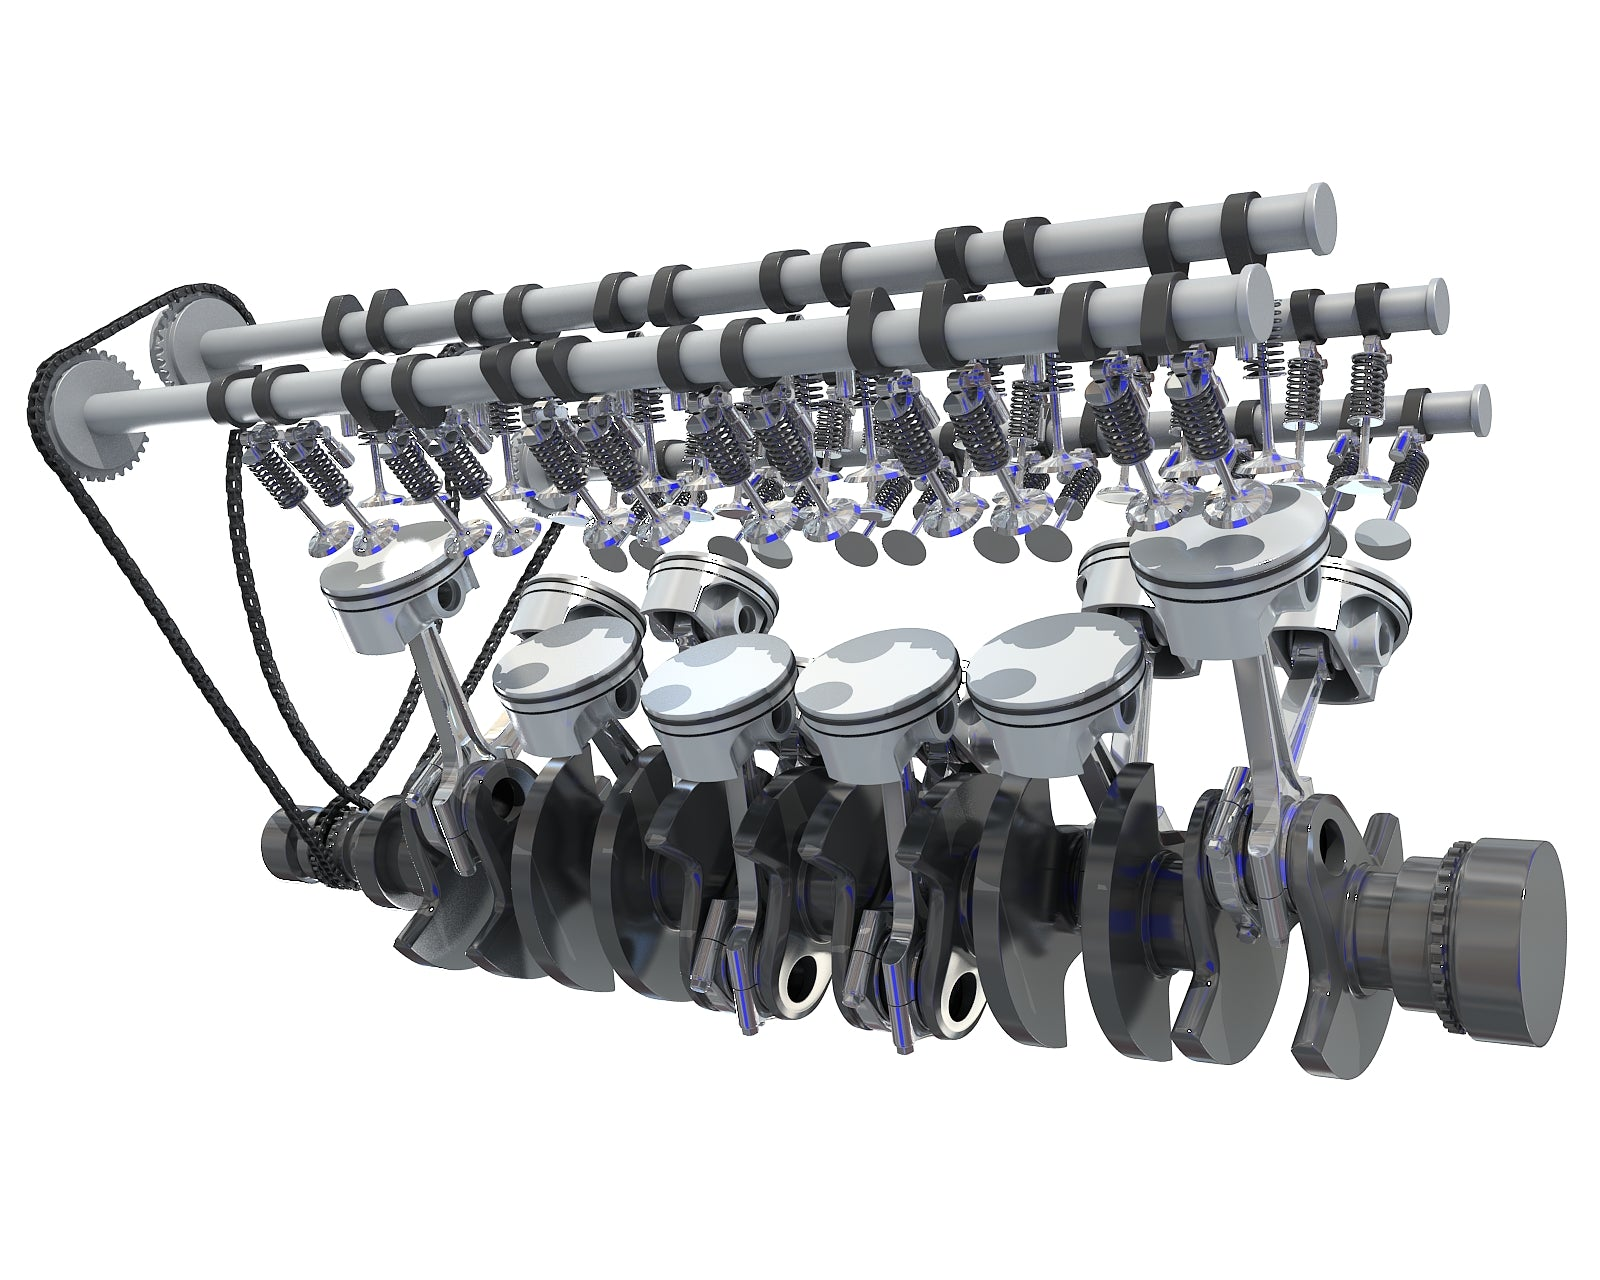 Animated V12 Engine